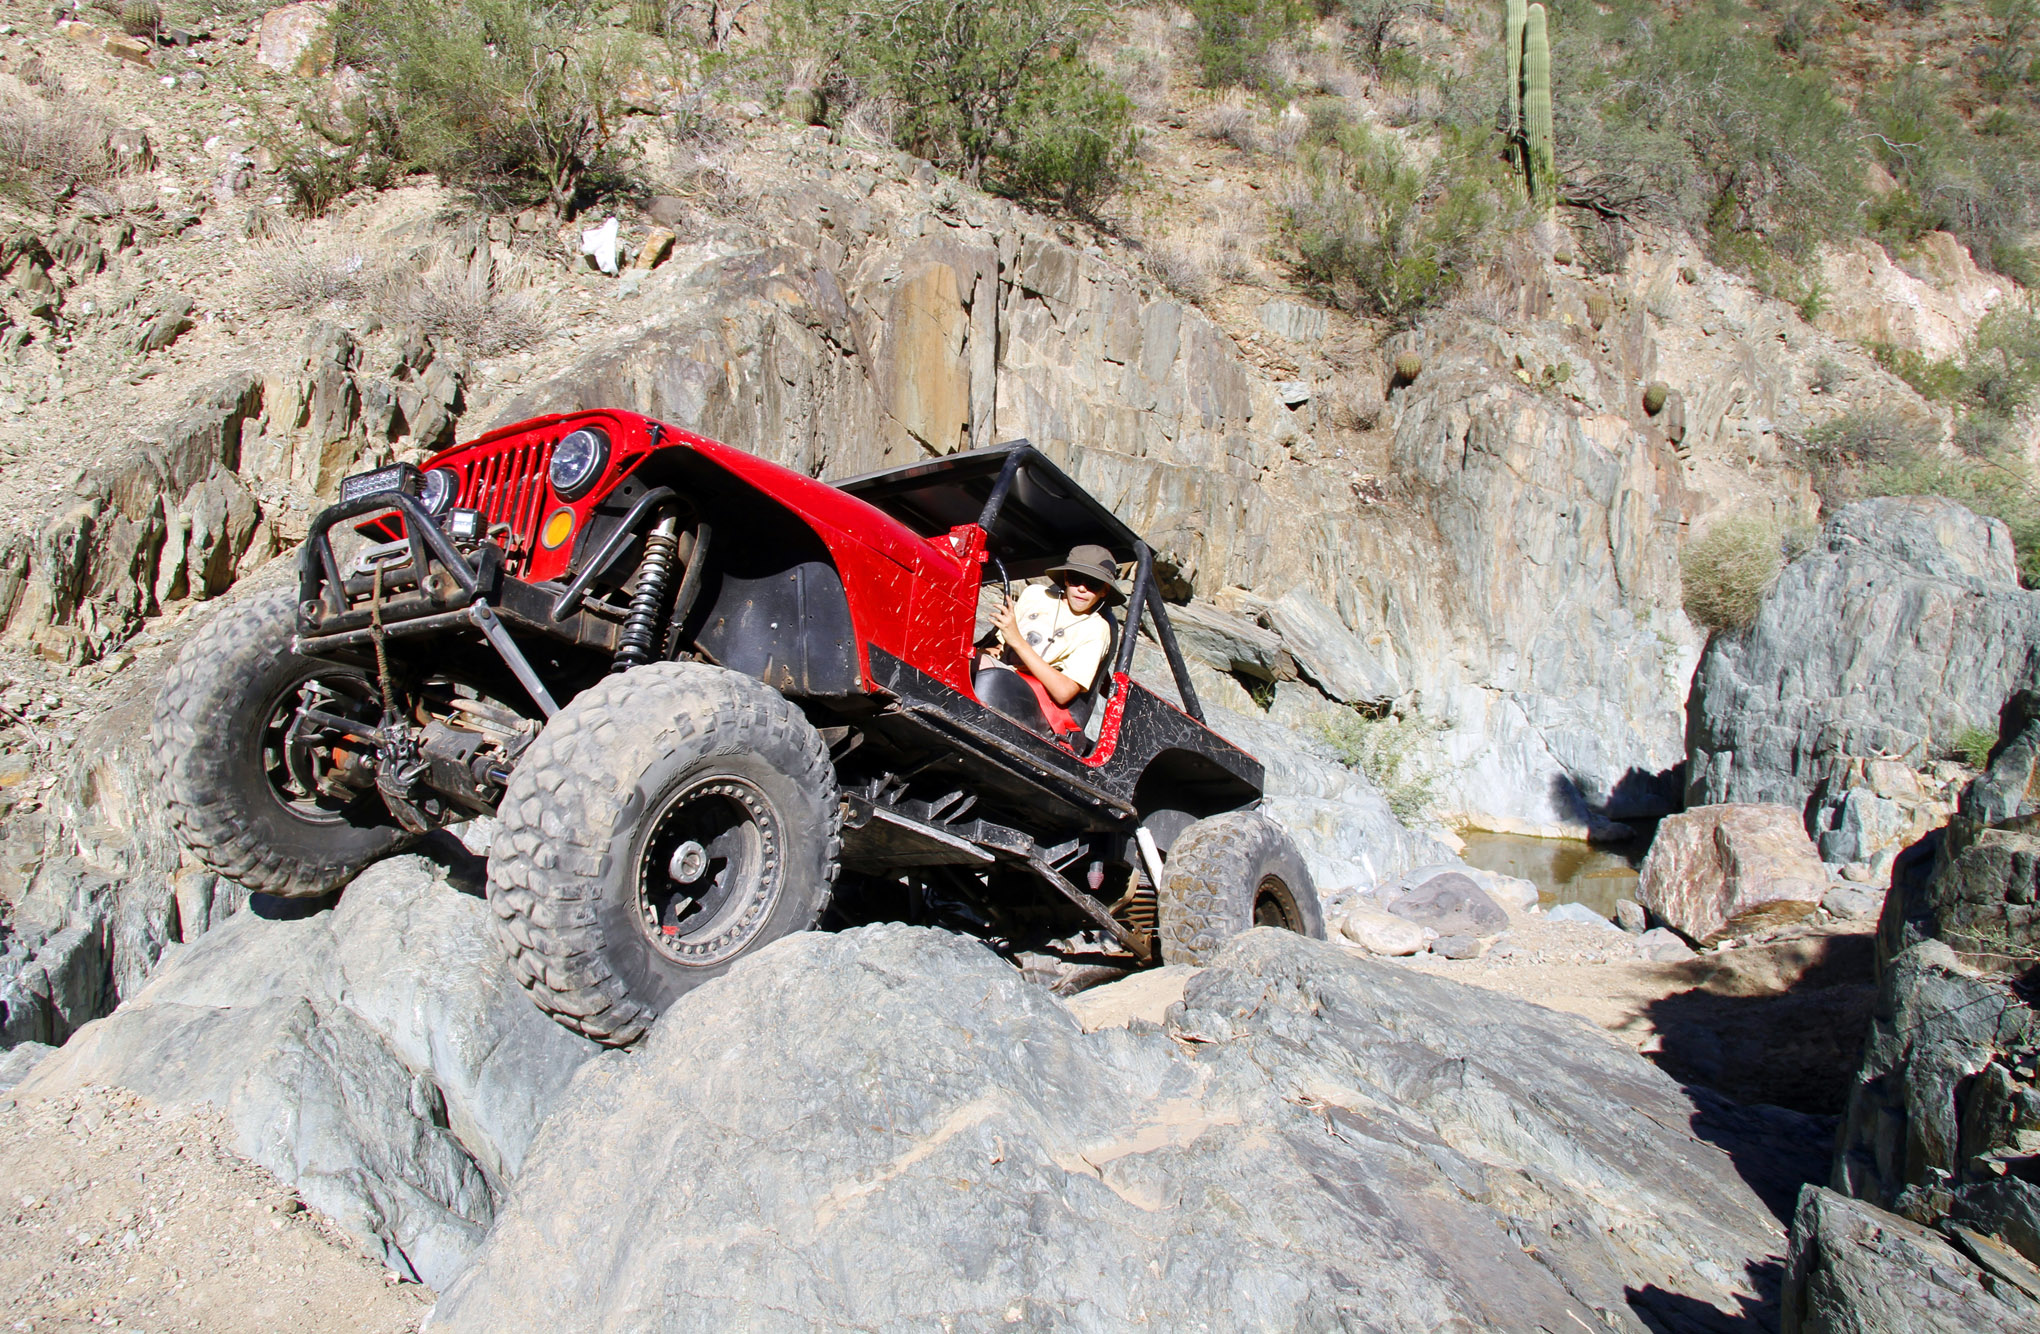 Max Werkmeister threads his dad's '83 Scrambler through Z-Turn on Lower Terminator. The classic Jeep has been linked front and rear, and it is built to crawl with a Mustang 5.0L V-8 under the hood, backed with an NP435 tranny and 4:1-geared Dana 300 transfer case.